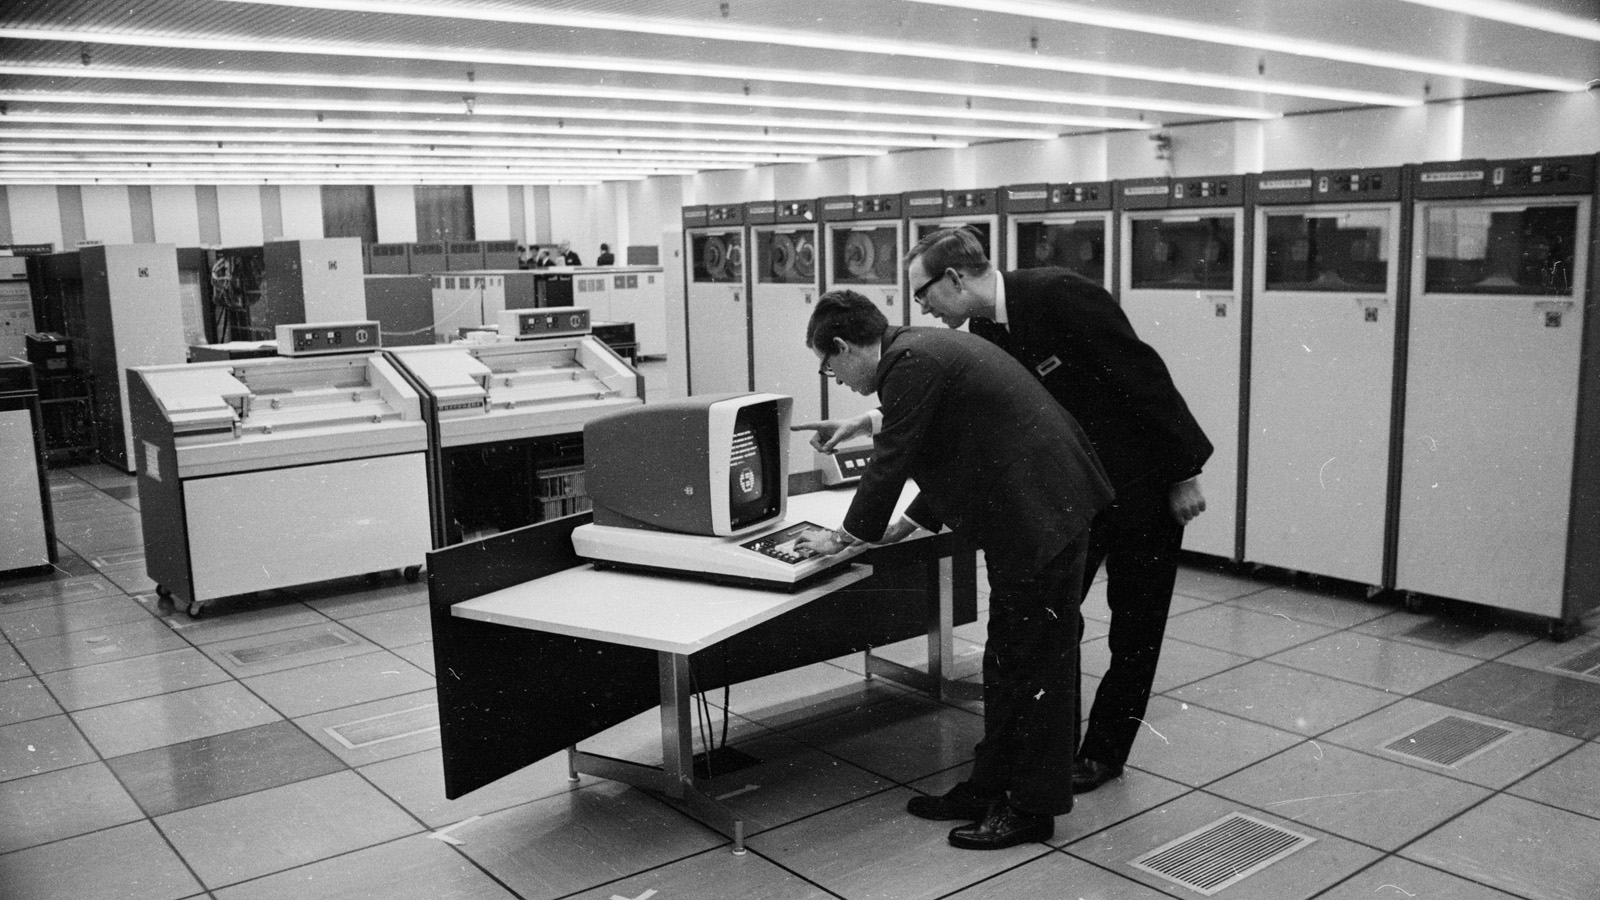 nasa in 1969 what did computers look like - photo #1